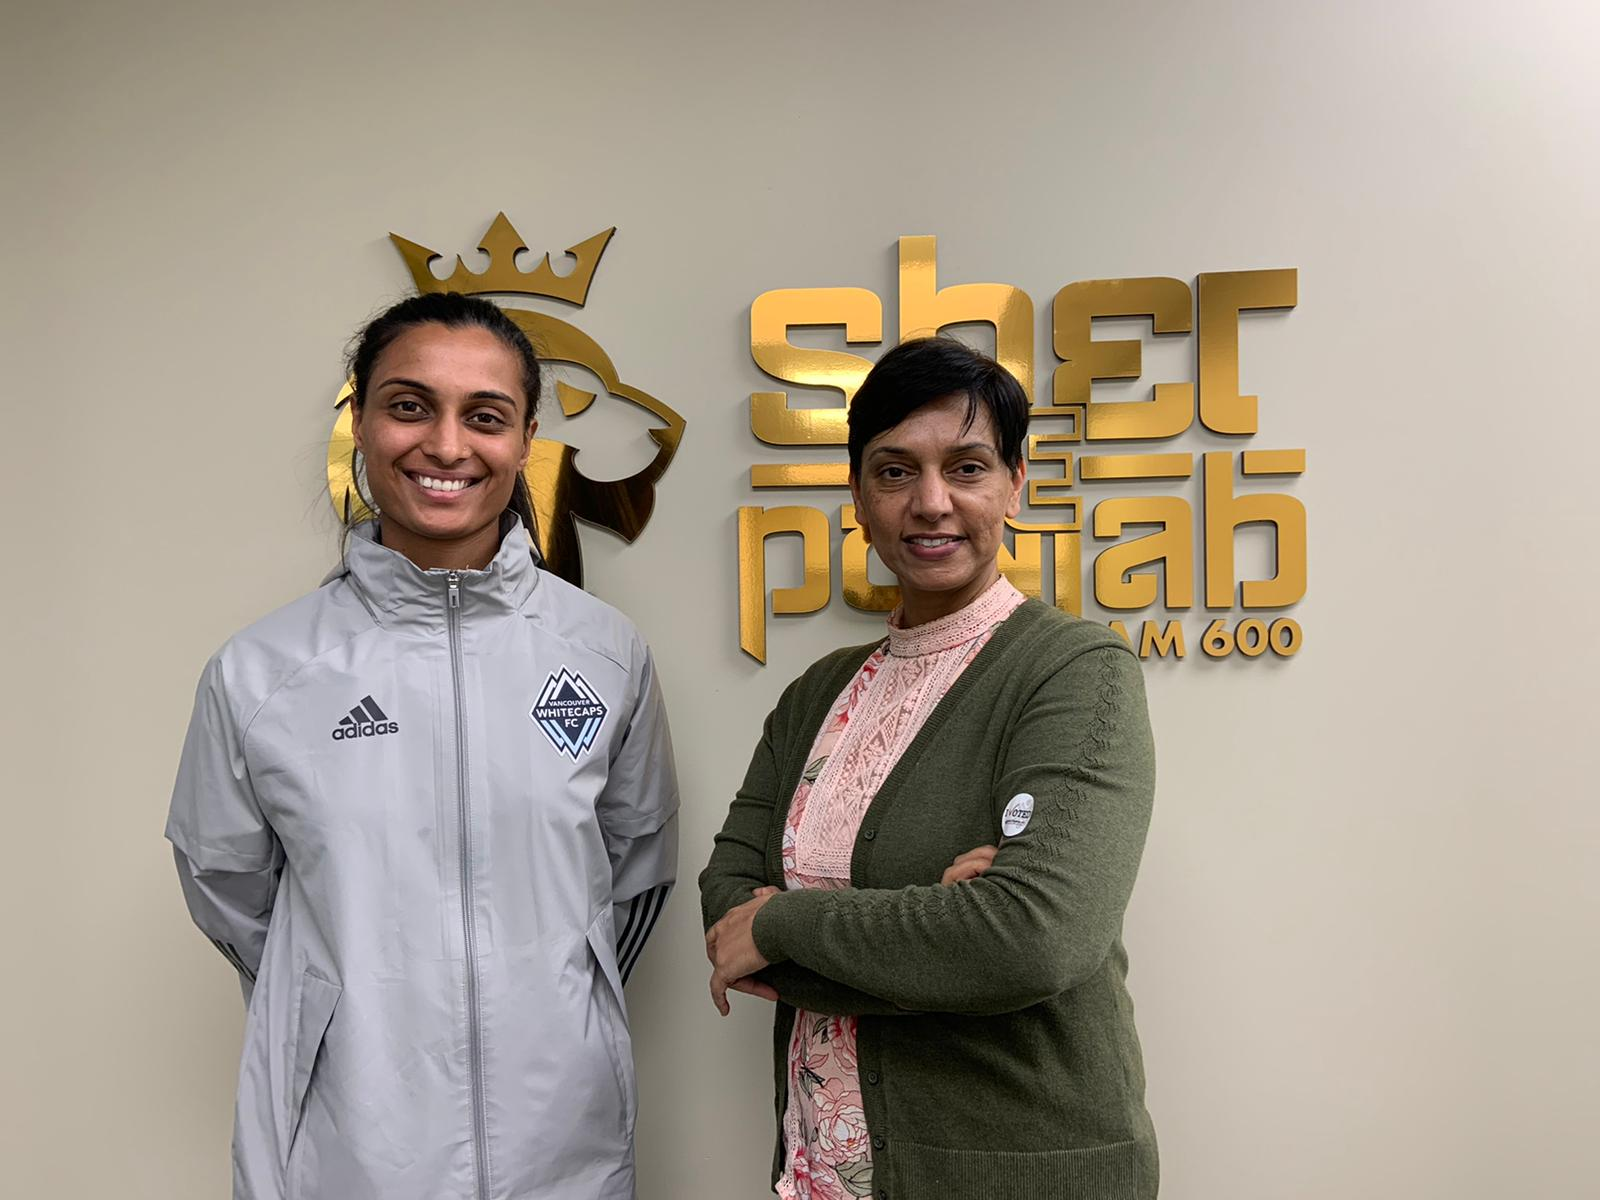 Jasmine Mander, the Soccer Coach discusses about life, sports and its challenges on The Navjot Dhillon Show